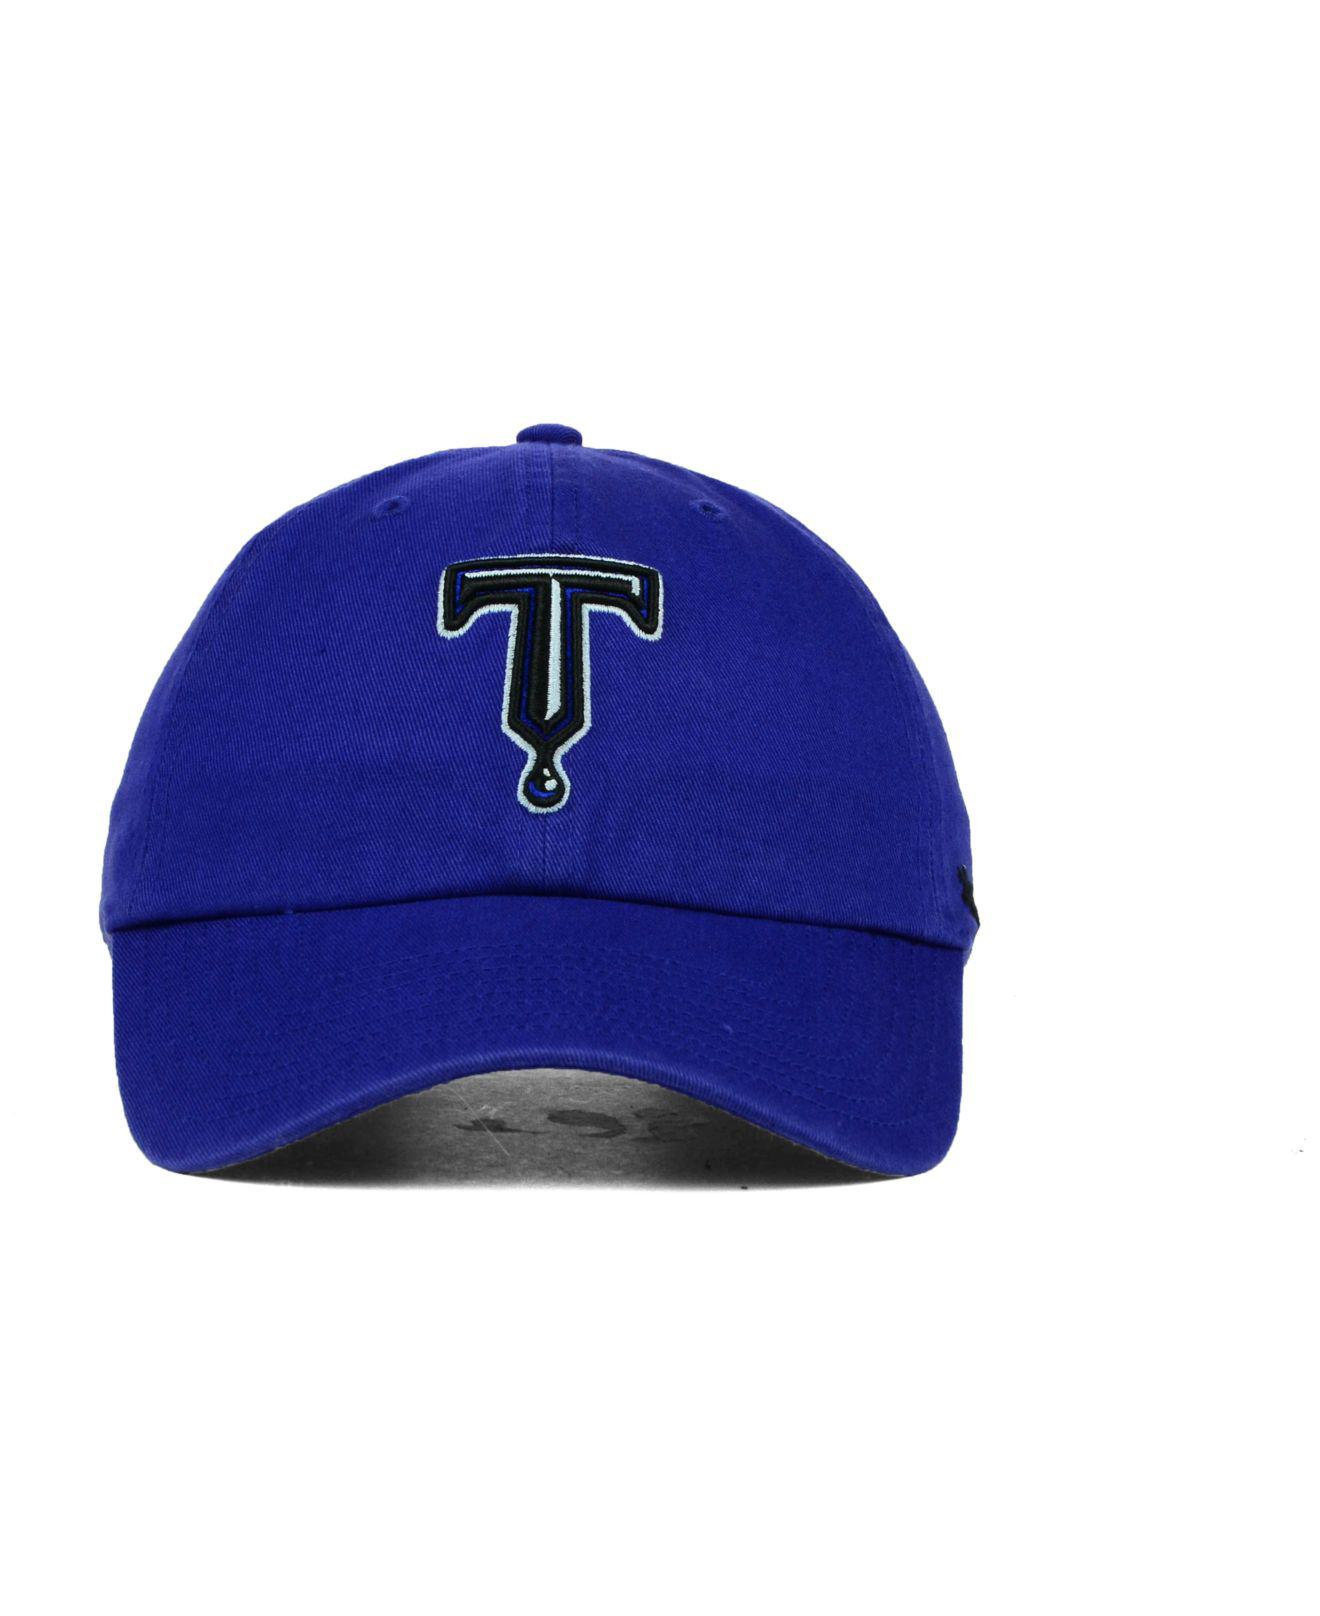 check out 56643 f1198 Lyst - 47 Brand Tulsa Drillers Clean Up Cap in Blue for Men